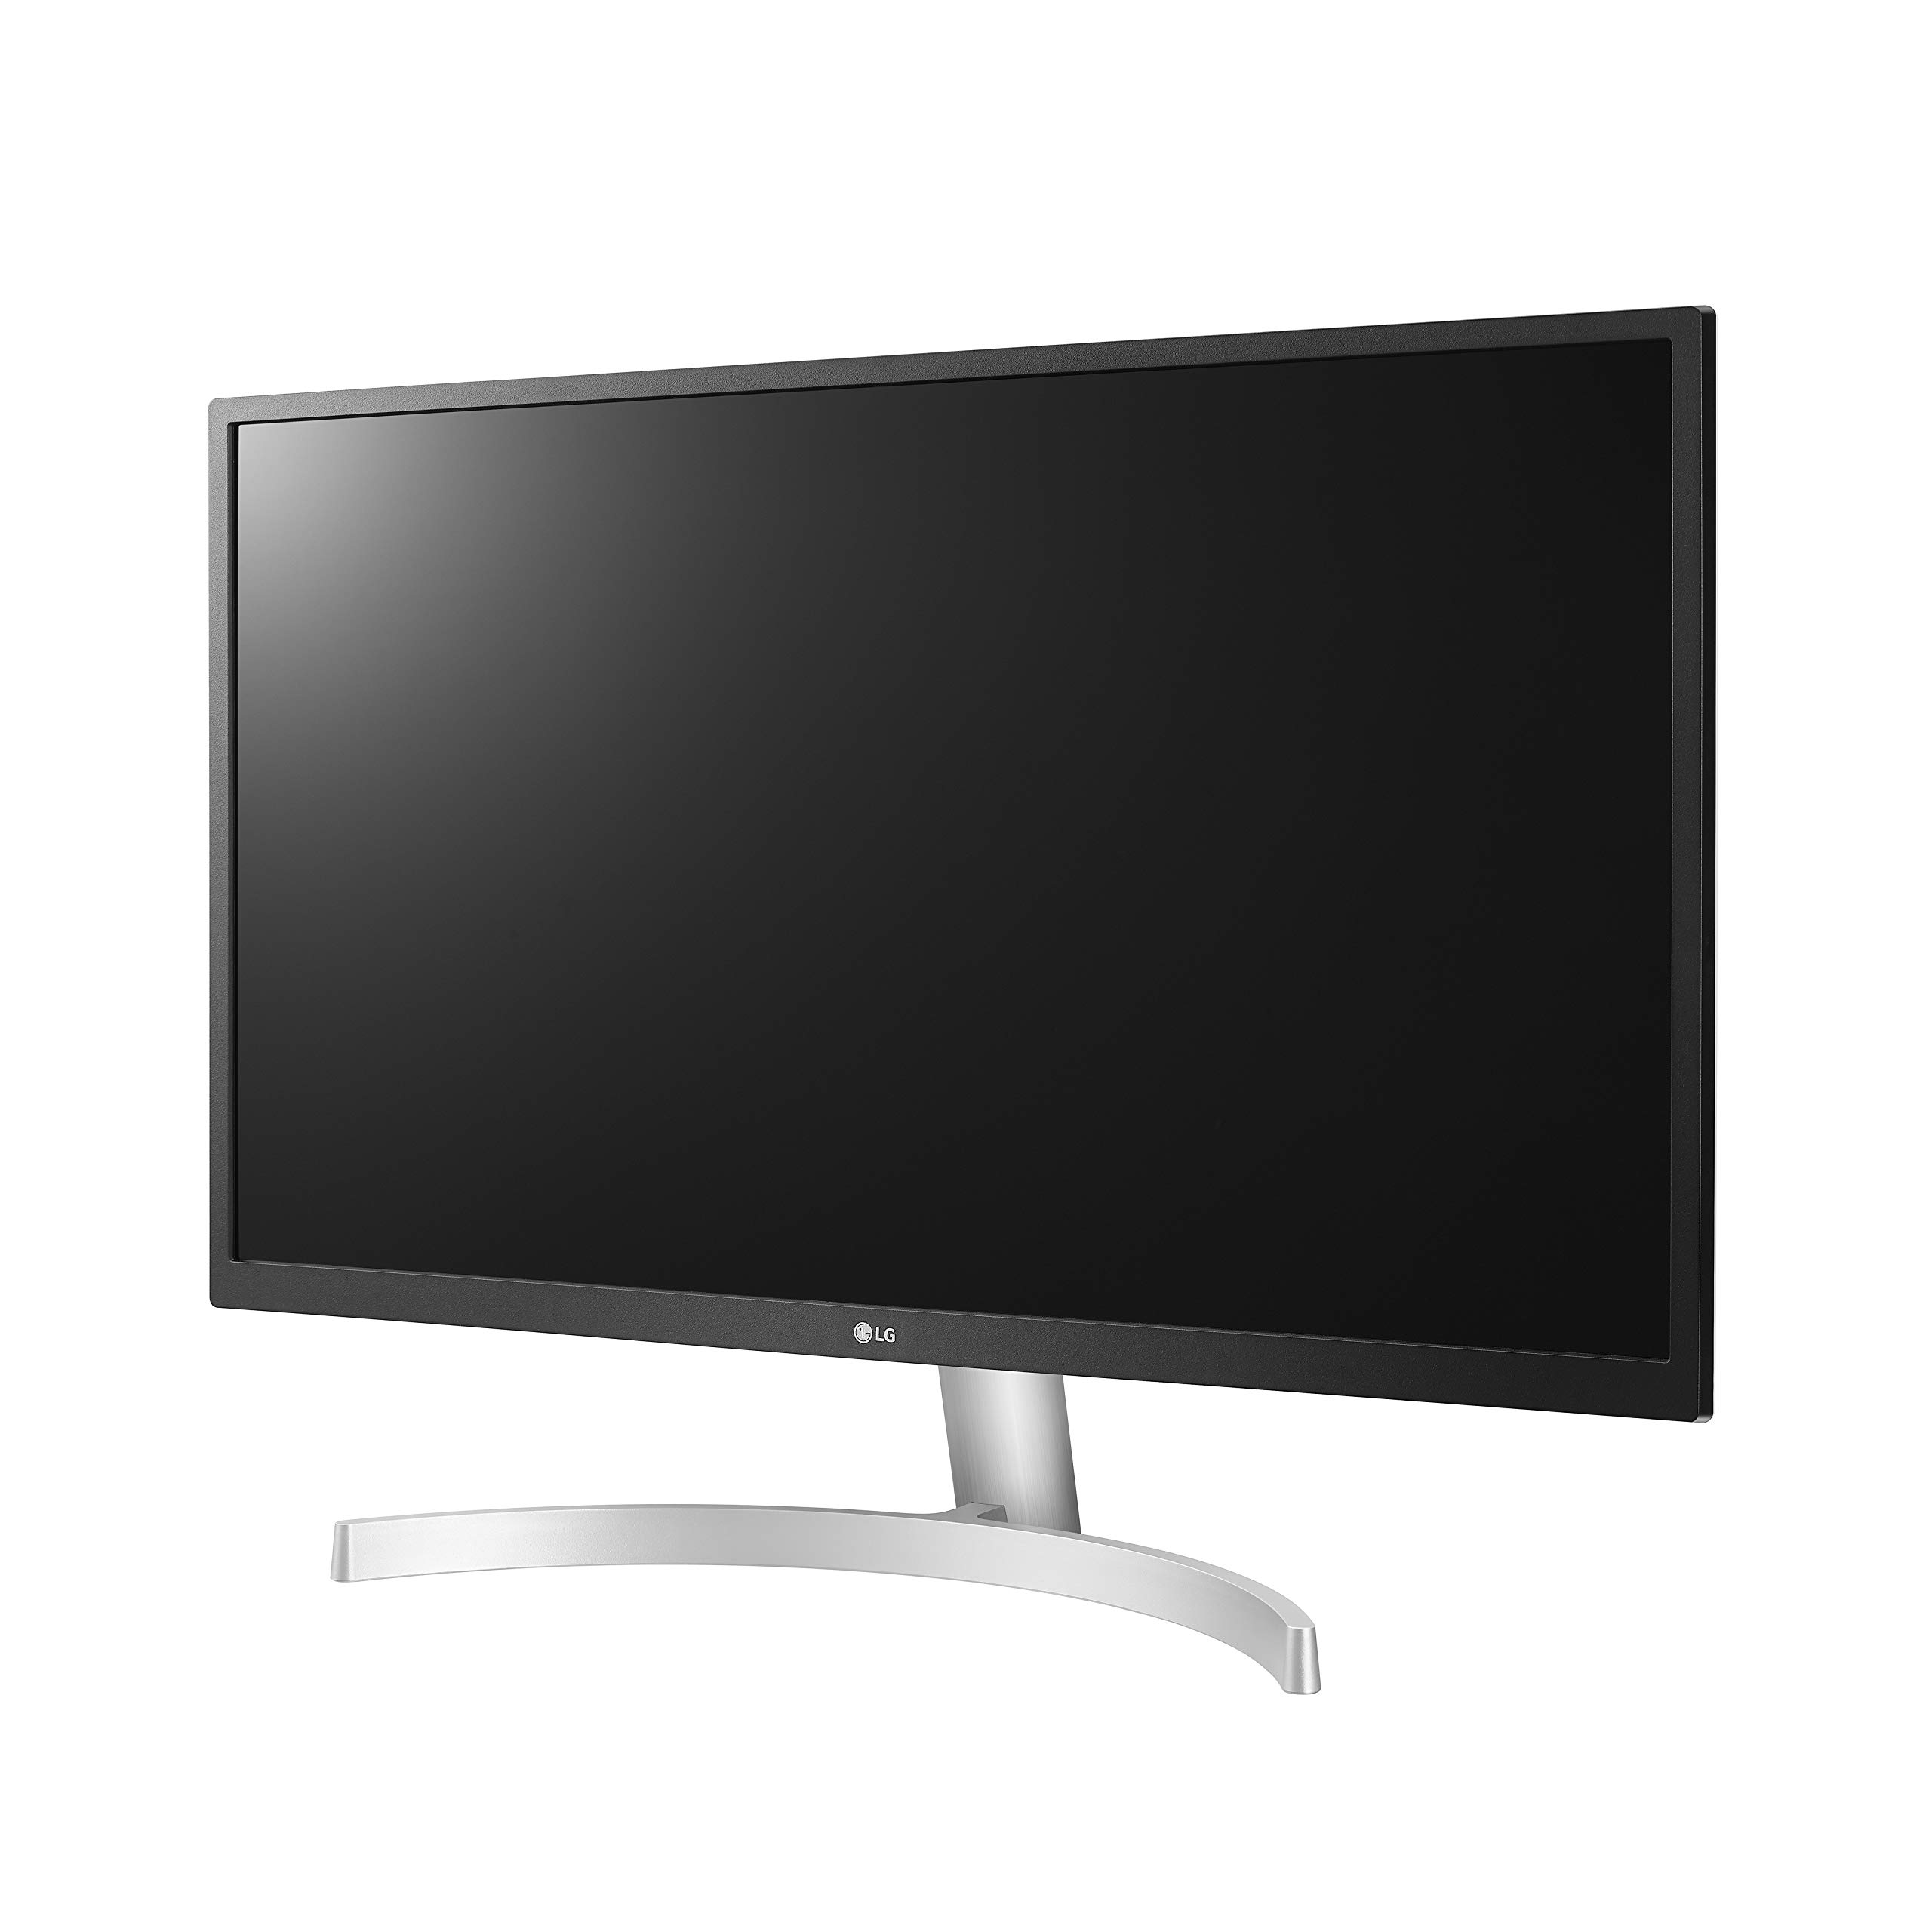 LG 27UL500-W 27-Inch UHD (3840 x 2160) IPS Monitor with Radeon Freesync Technology and HDR10, White by LG (Image #2)